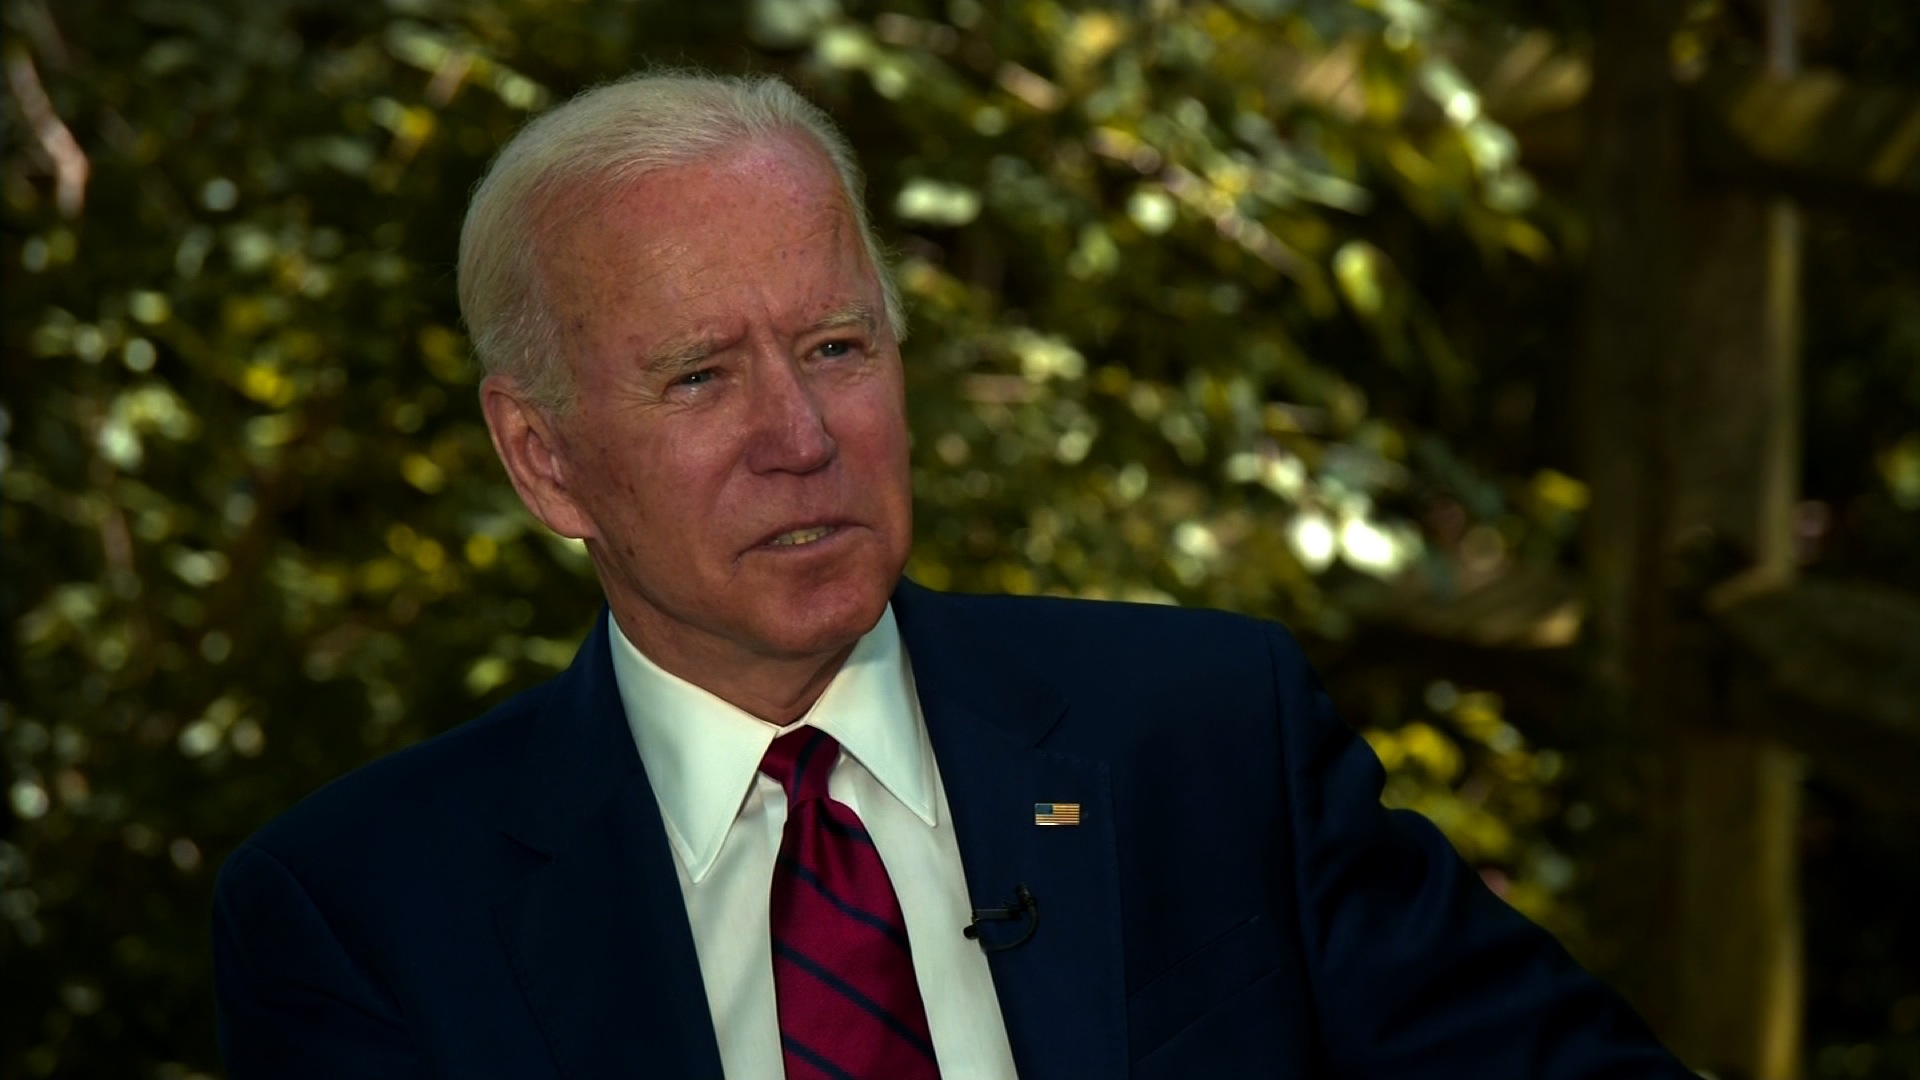 Biden says he hopes to name vice presidential pick around August 1